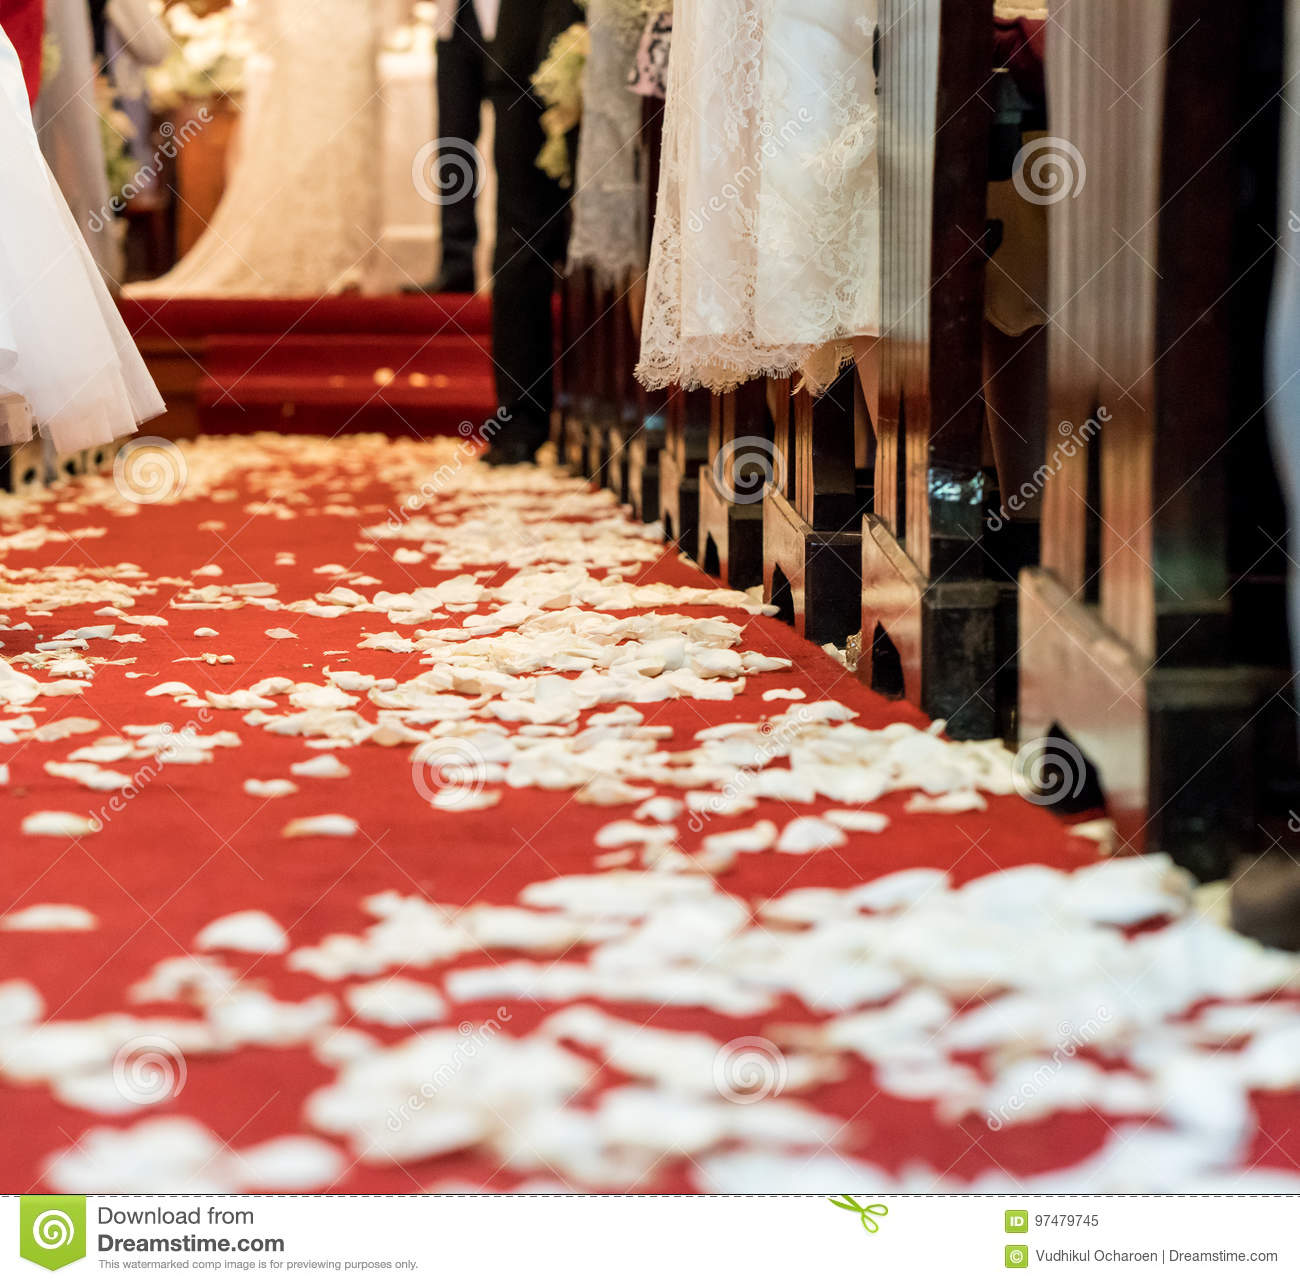 Closed up white flower petals on red carpet floor in church at C